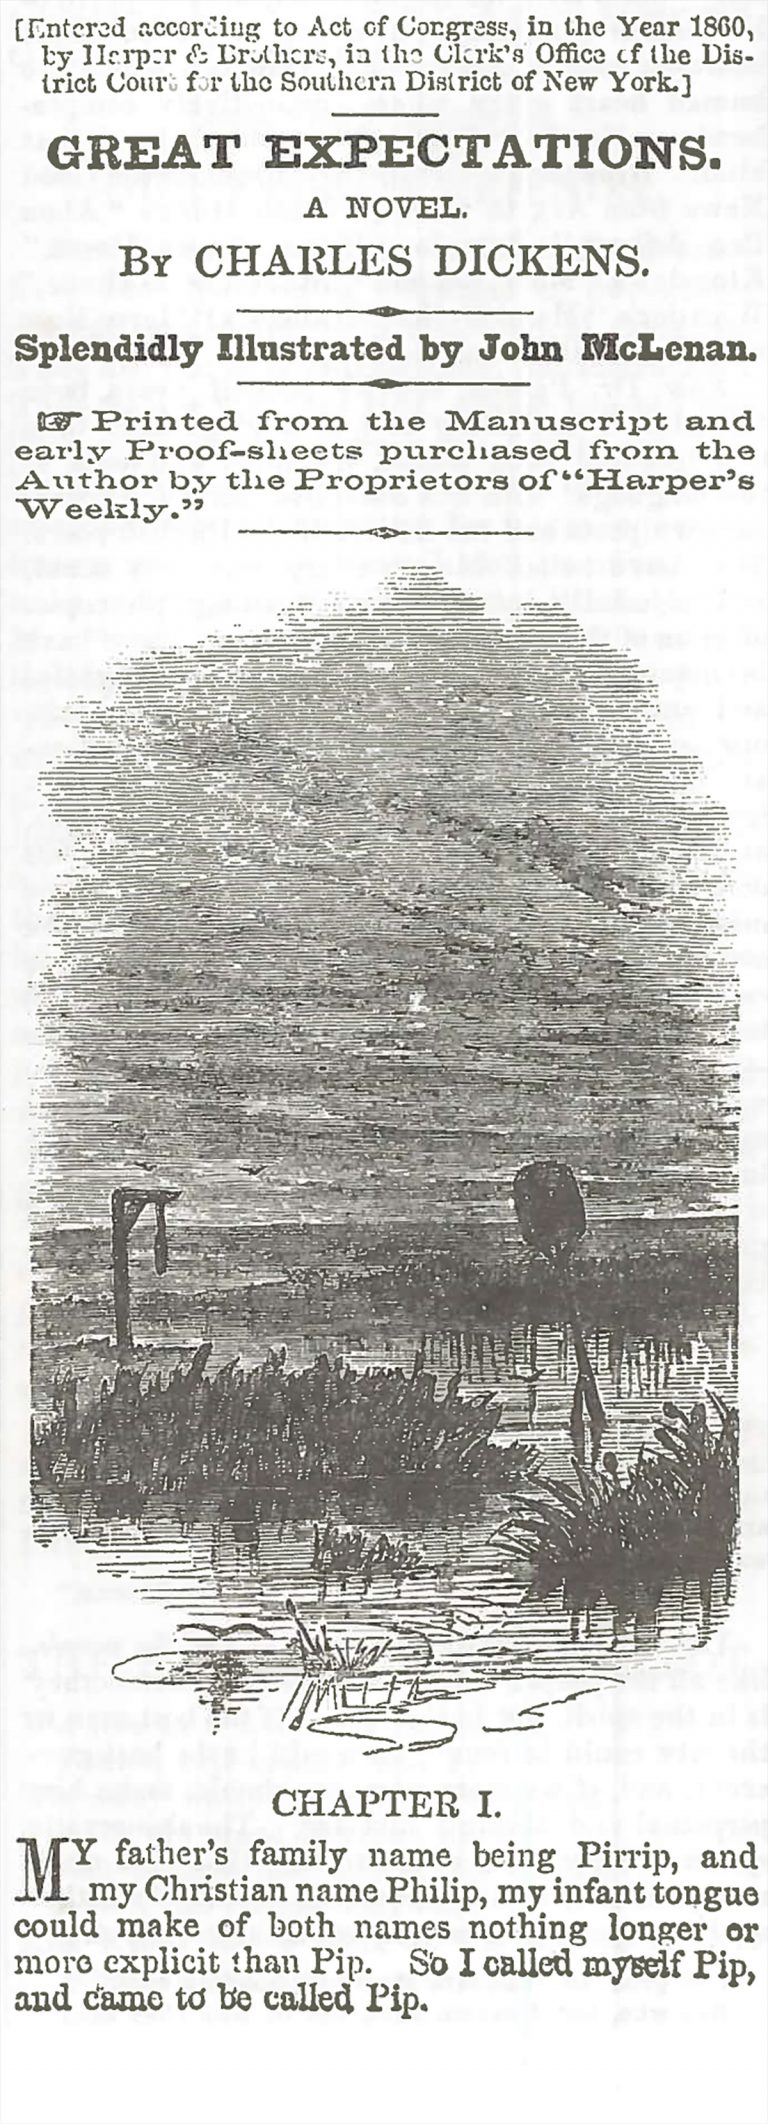 The first installment of Great Expectations by Charles Dickens published in Harper's Weekly.